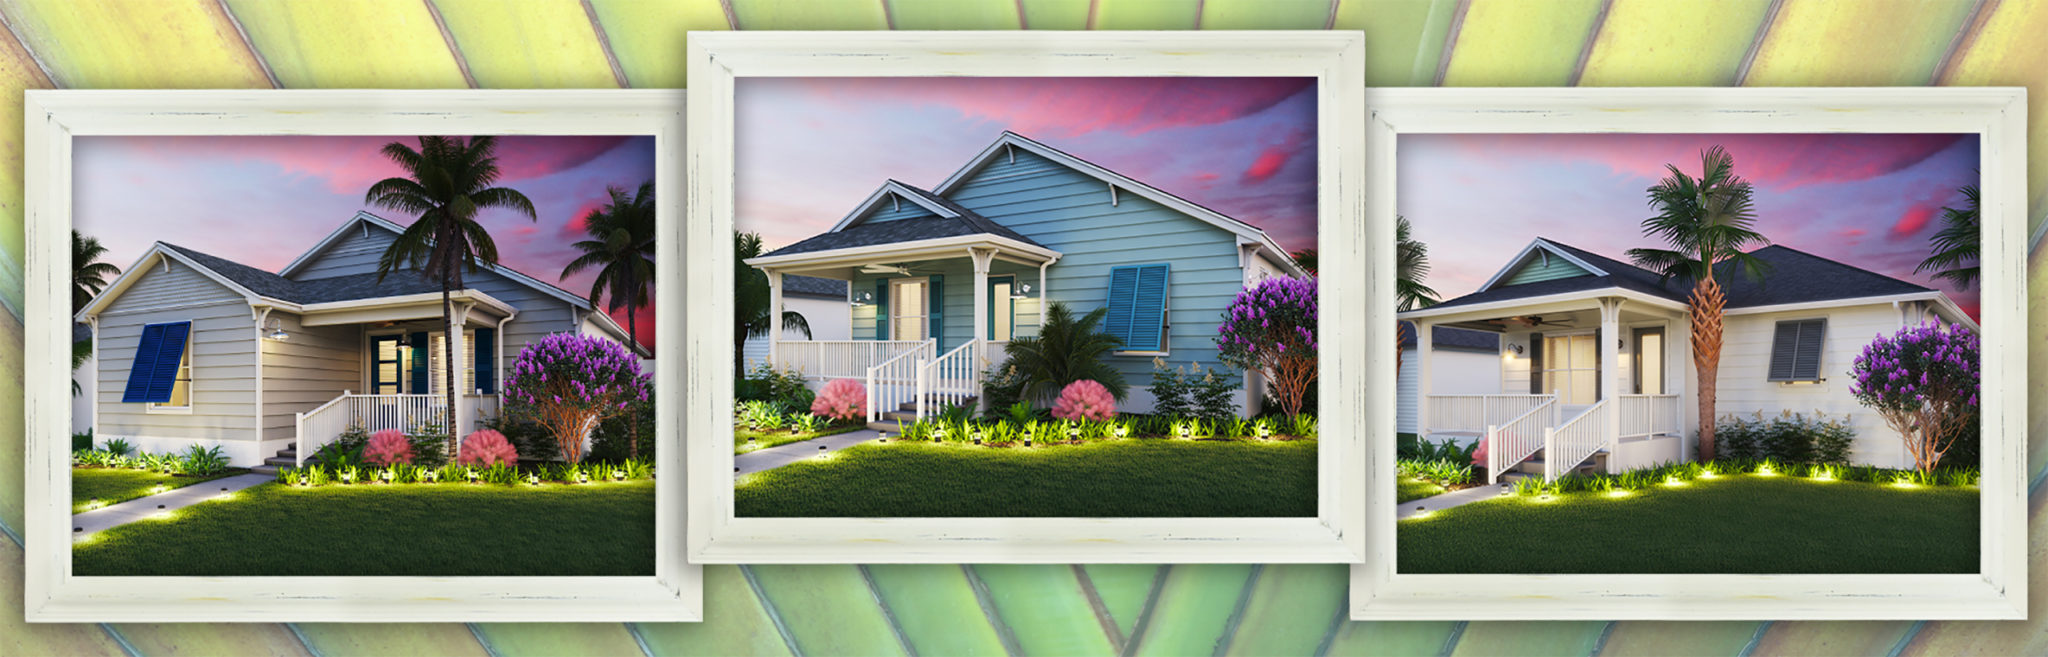 Cottages-Header